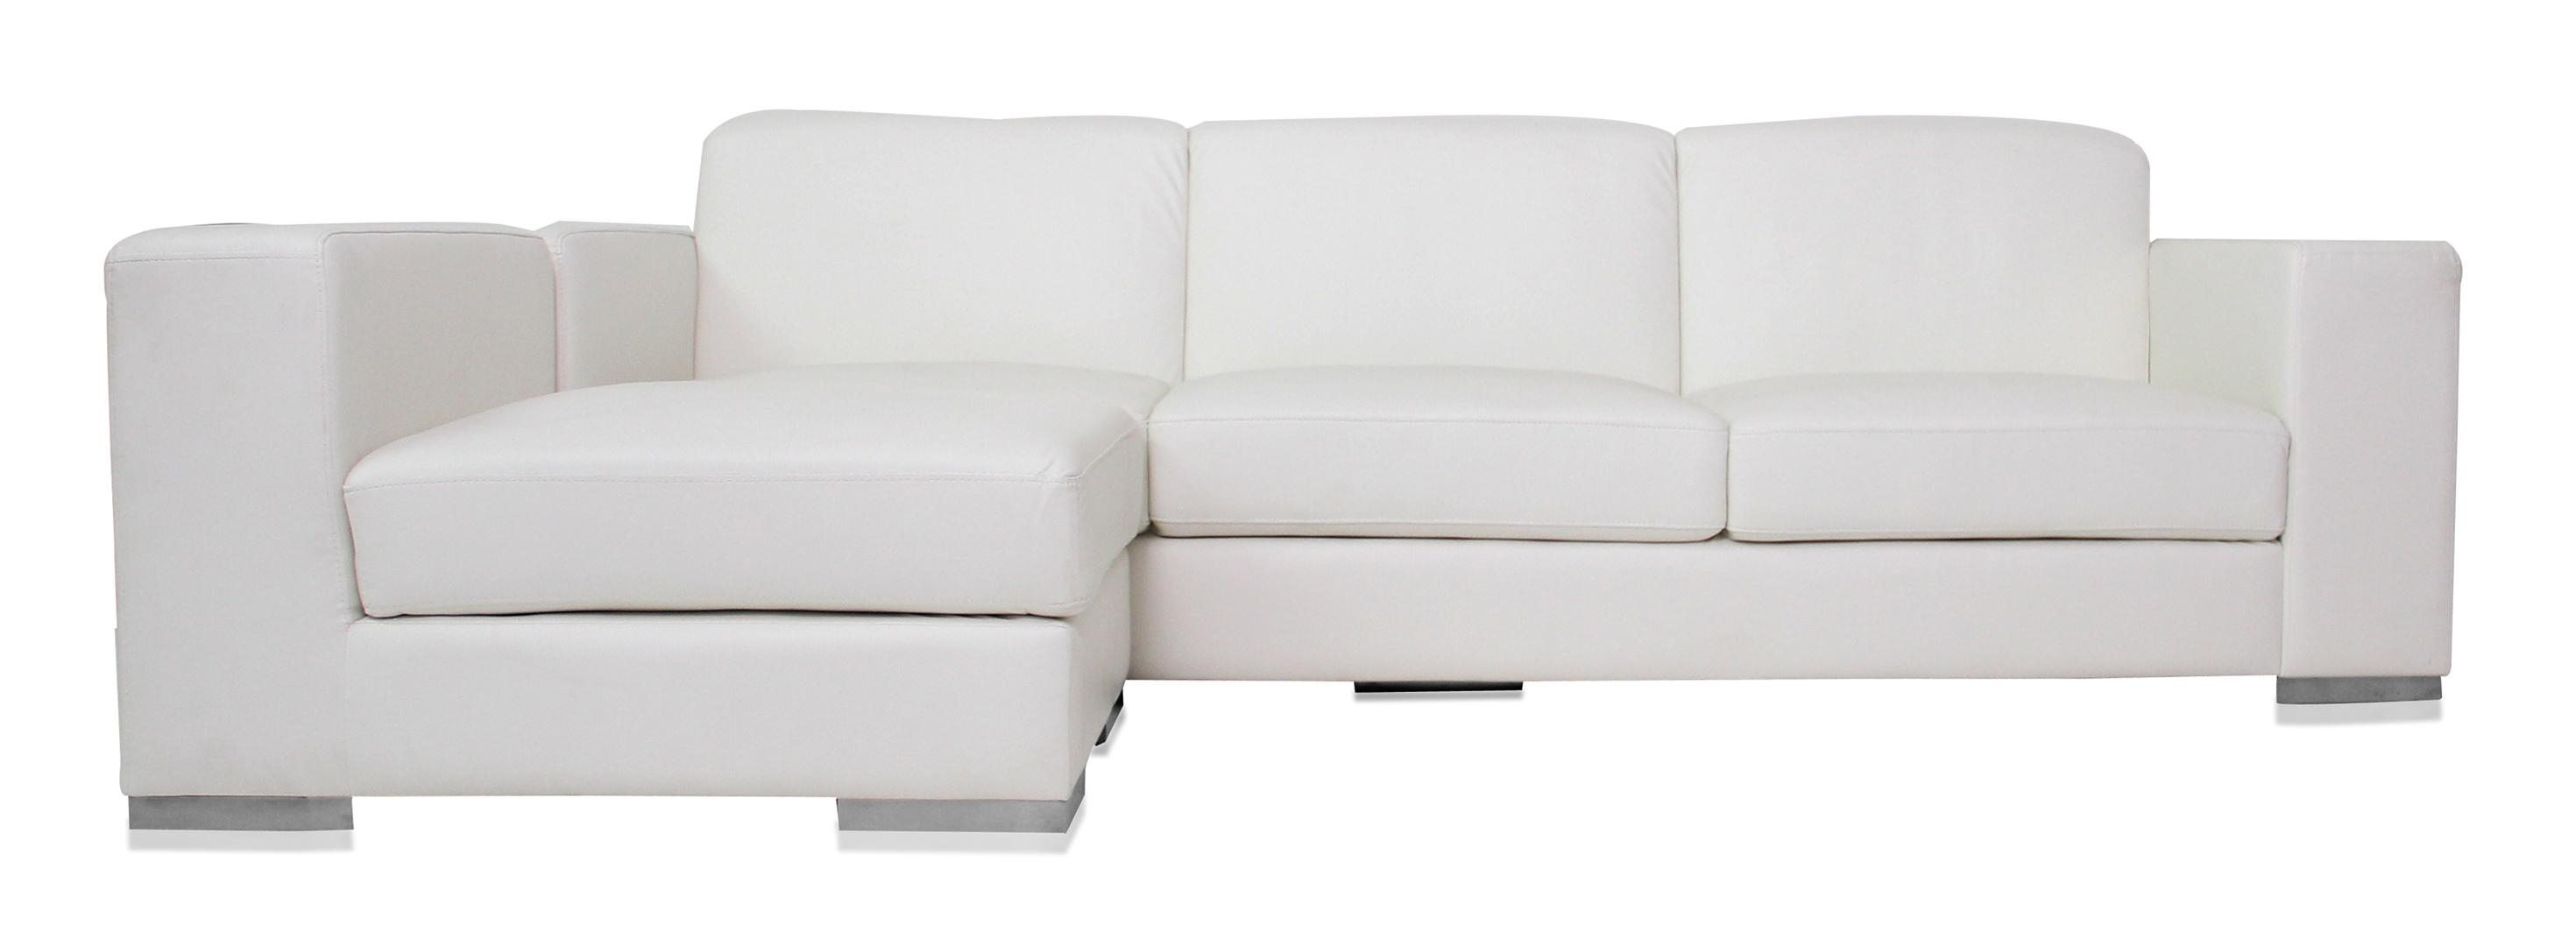 modern sofa plans free click clack convertible 20 43 choices of white leather sofas ideas